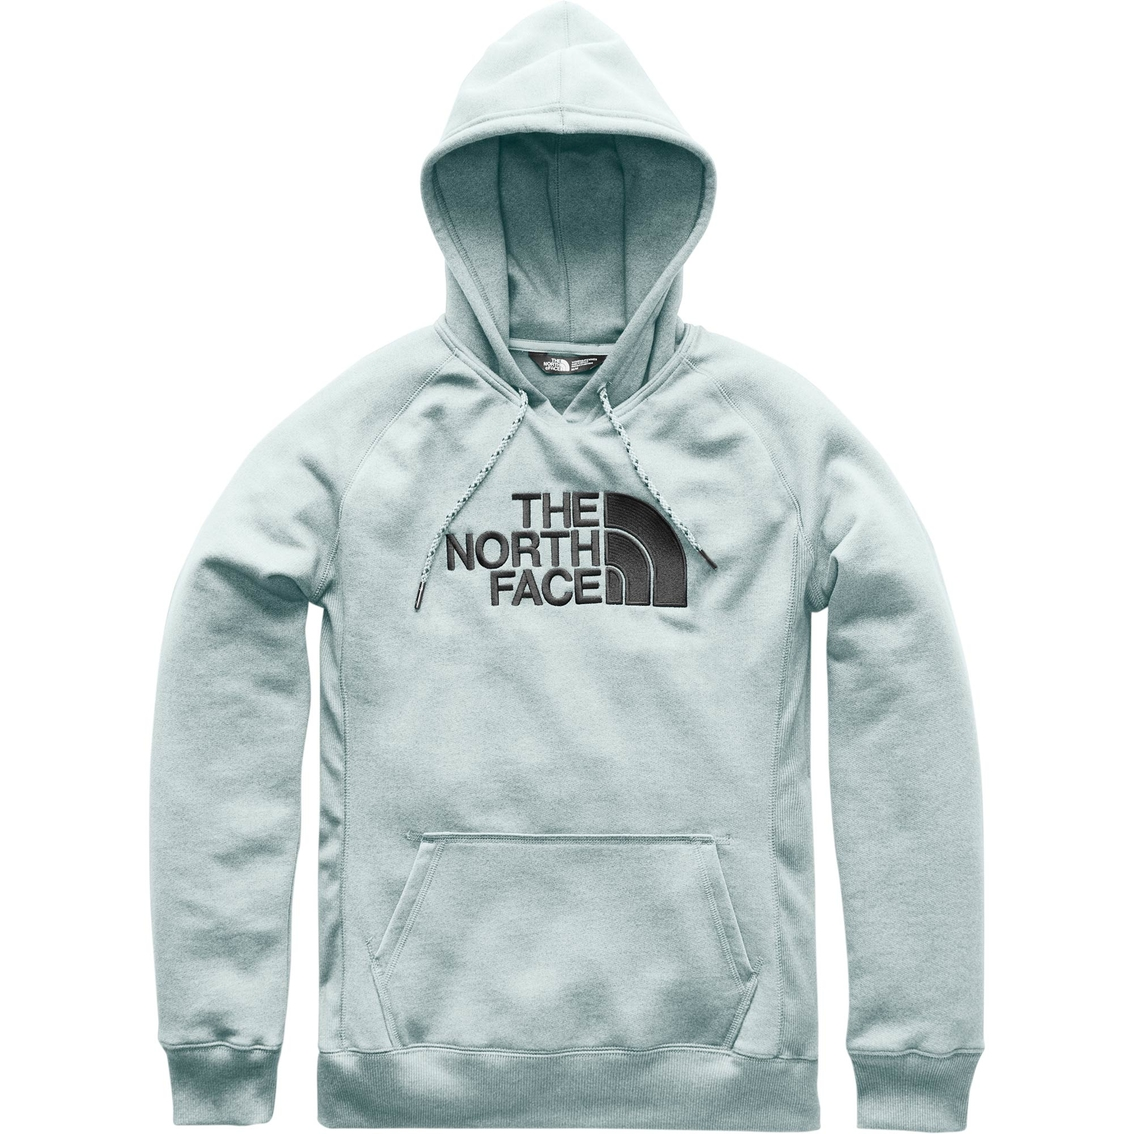 00a925f39 The North Face Half Dome Heavyweight Pullover Fleece Top | Hoodies ...